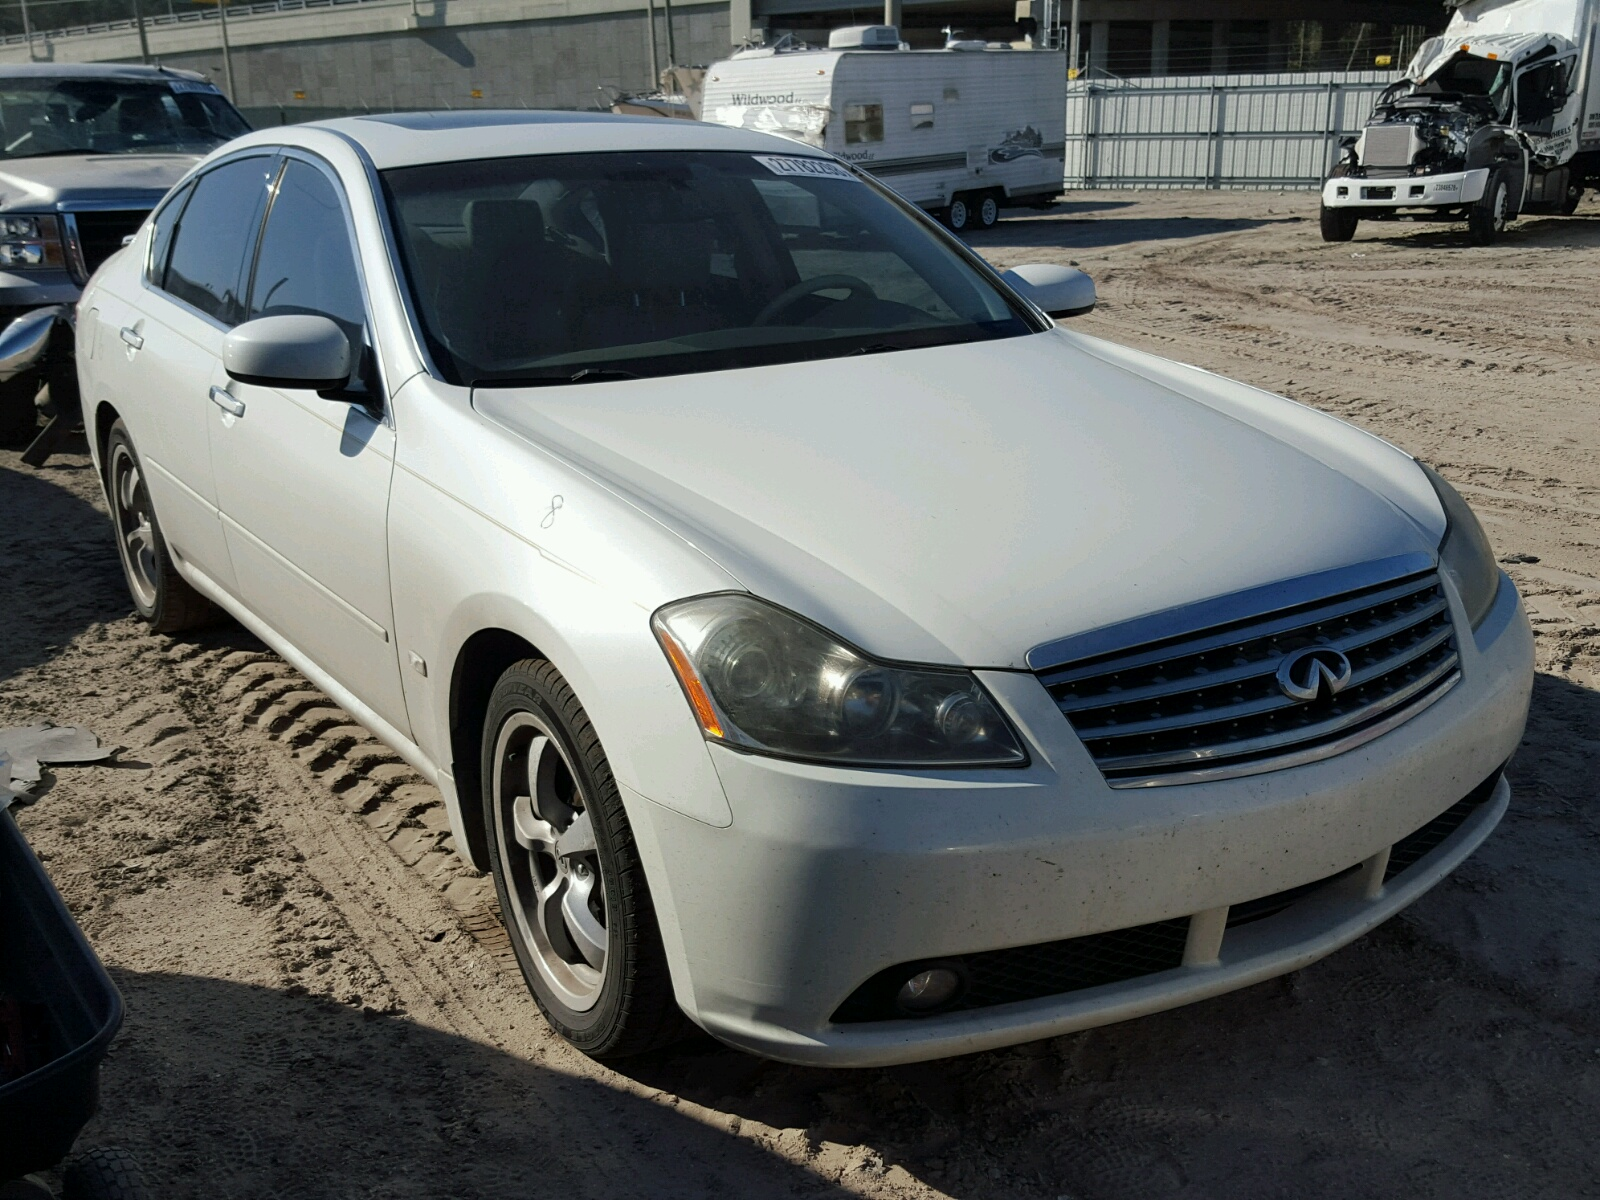 copart salvage base carfinder in sale cert auctions left infiniti tanner of view gray en title lot on infinity online auto al for